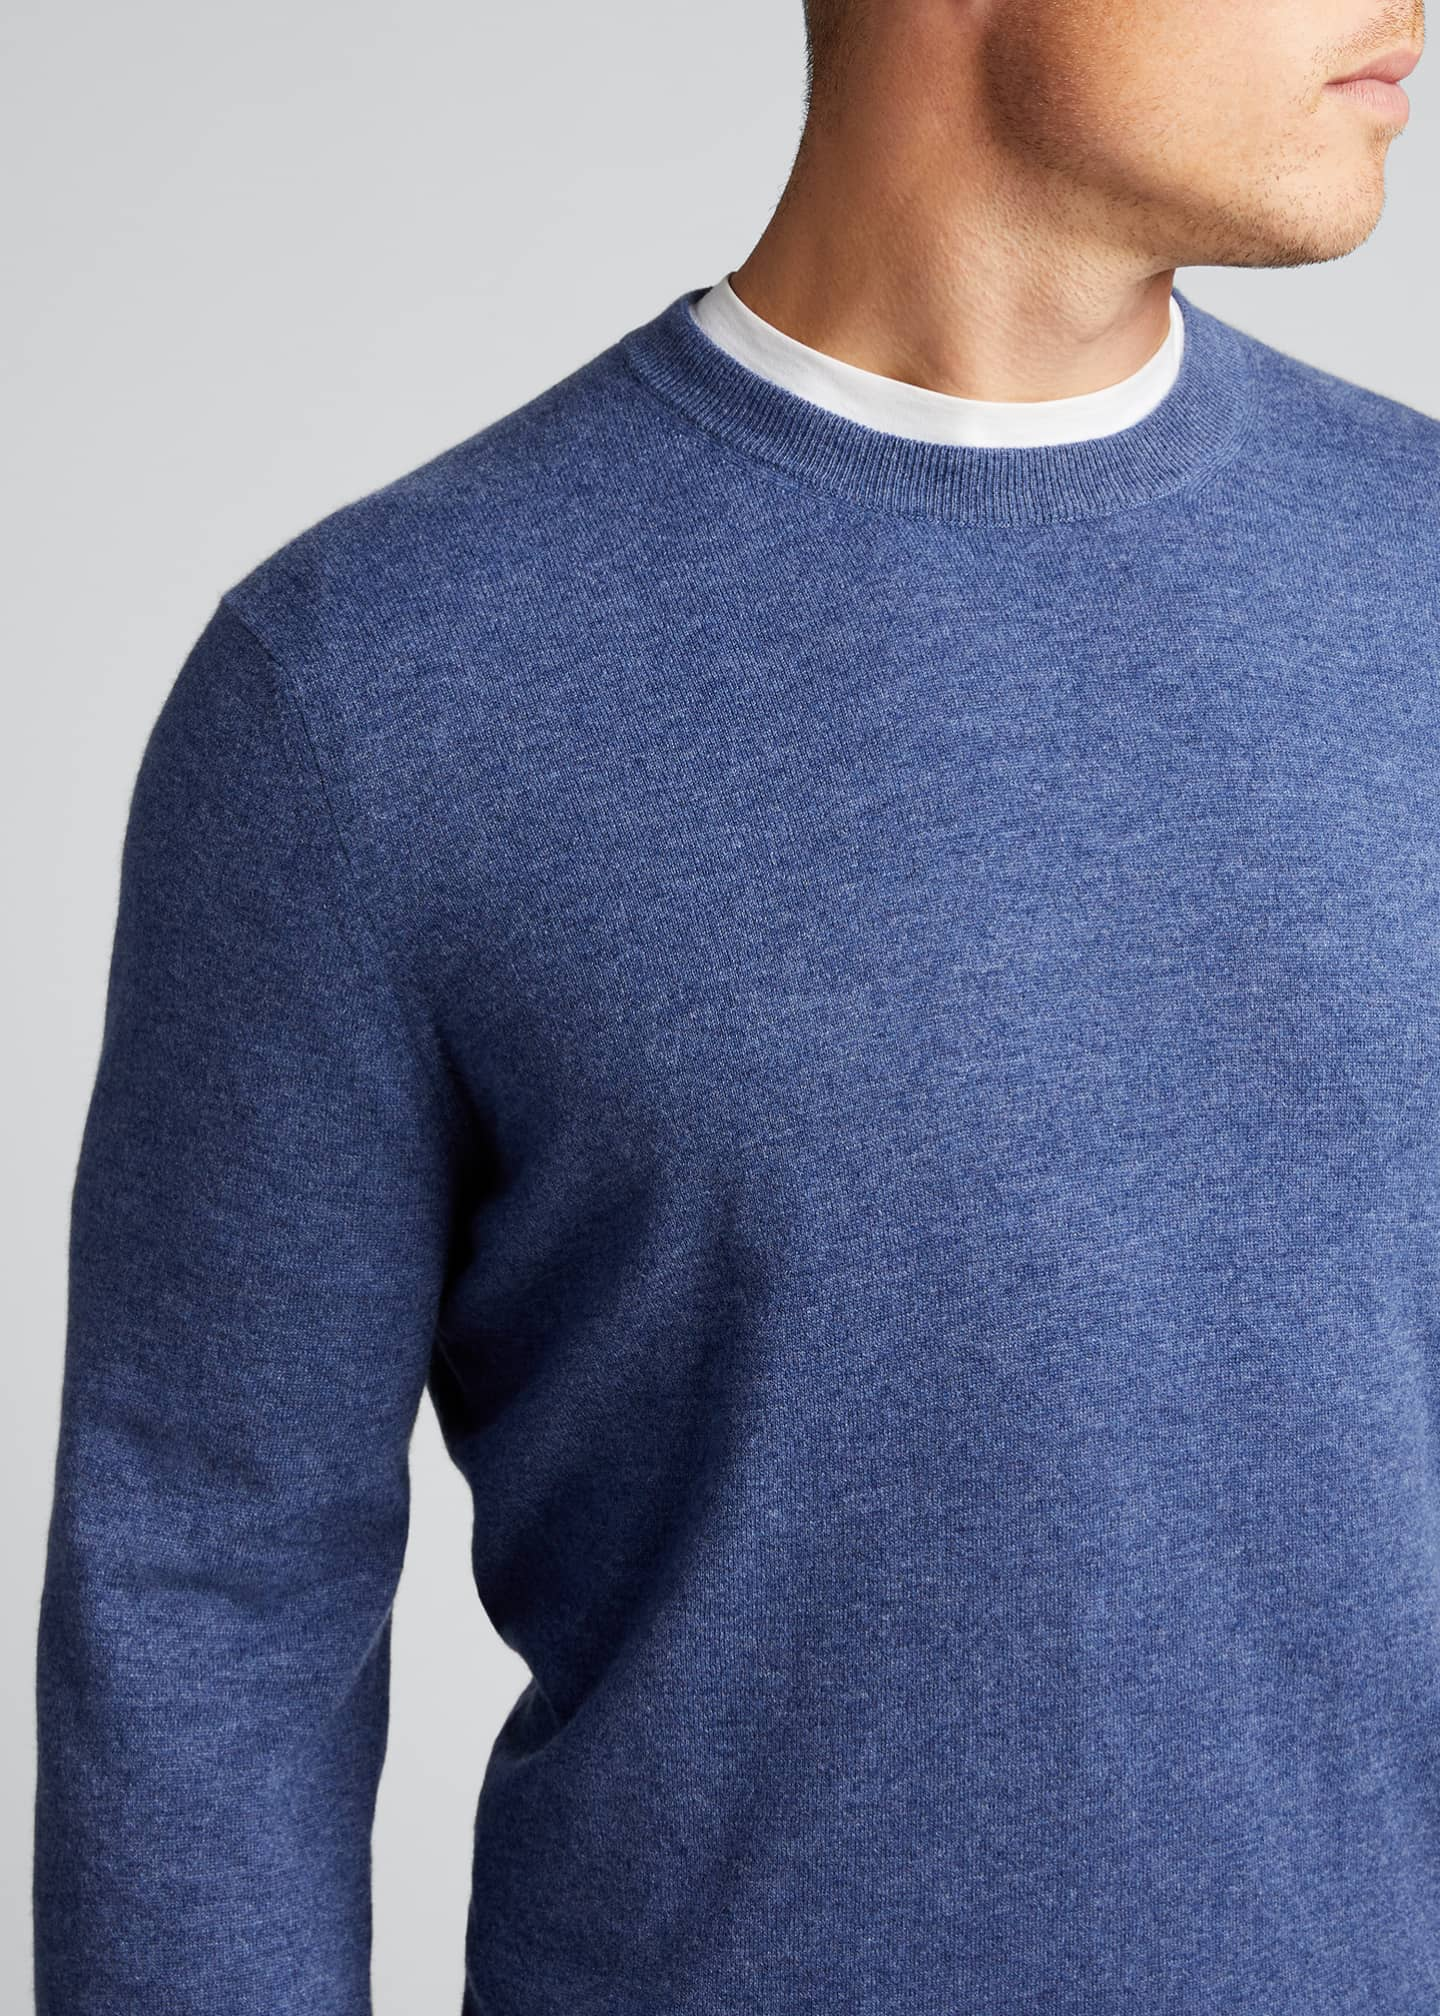 Image 4 of 5: Men's 2-Ply Cashmere Crew Sweater